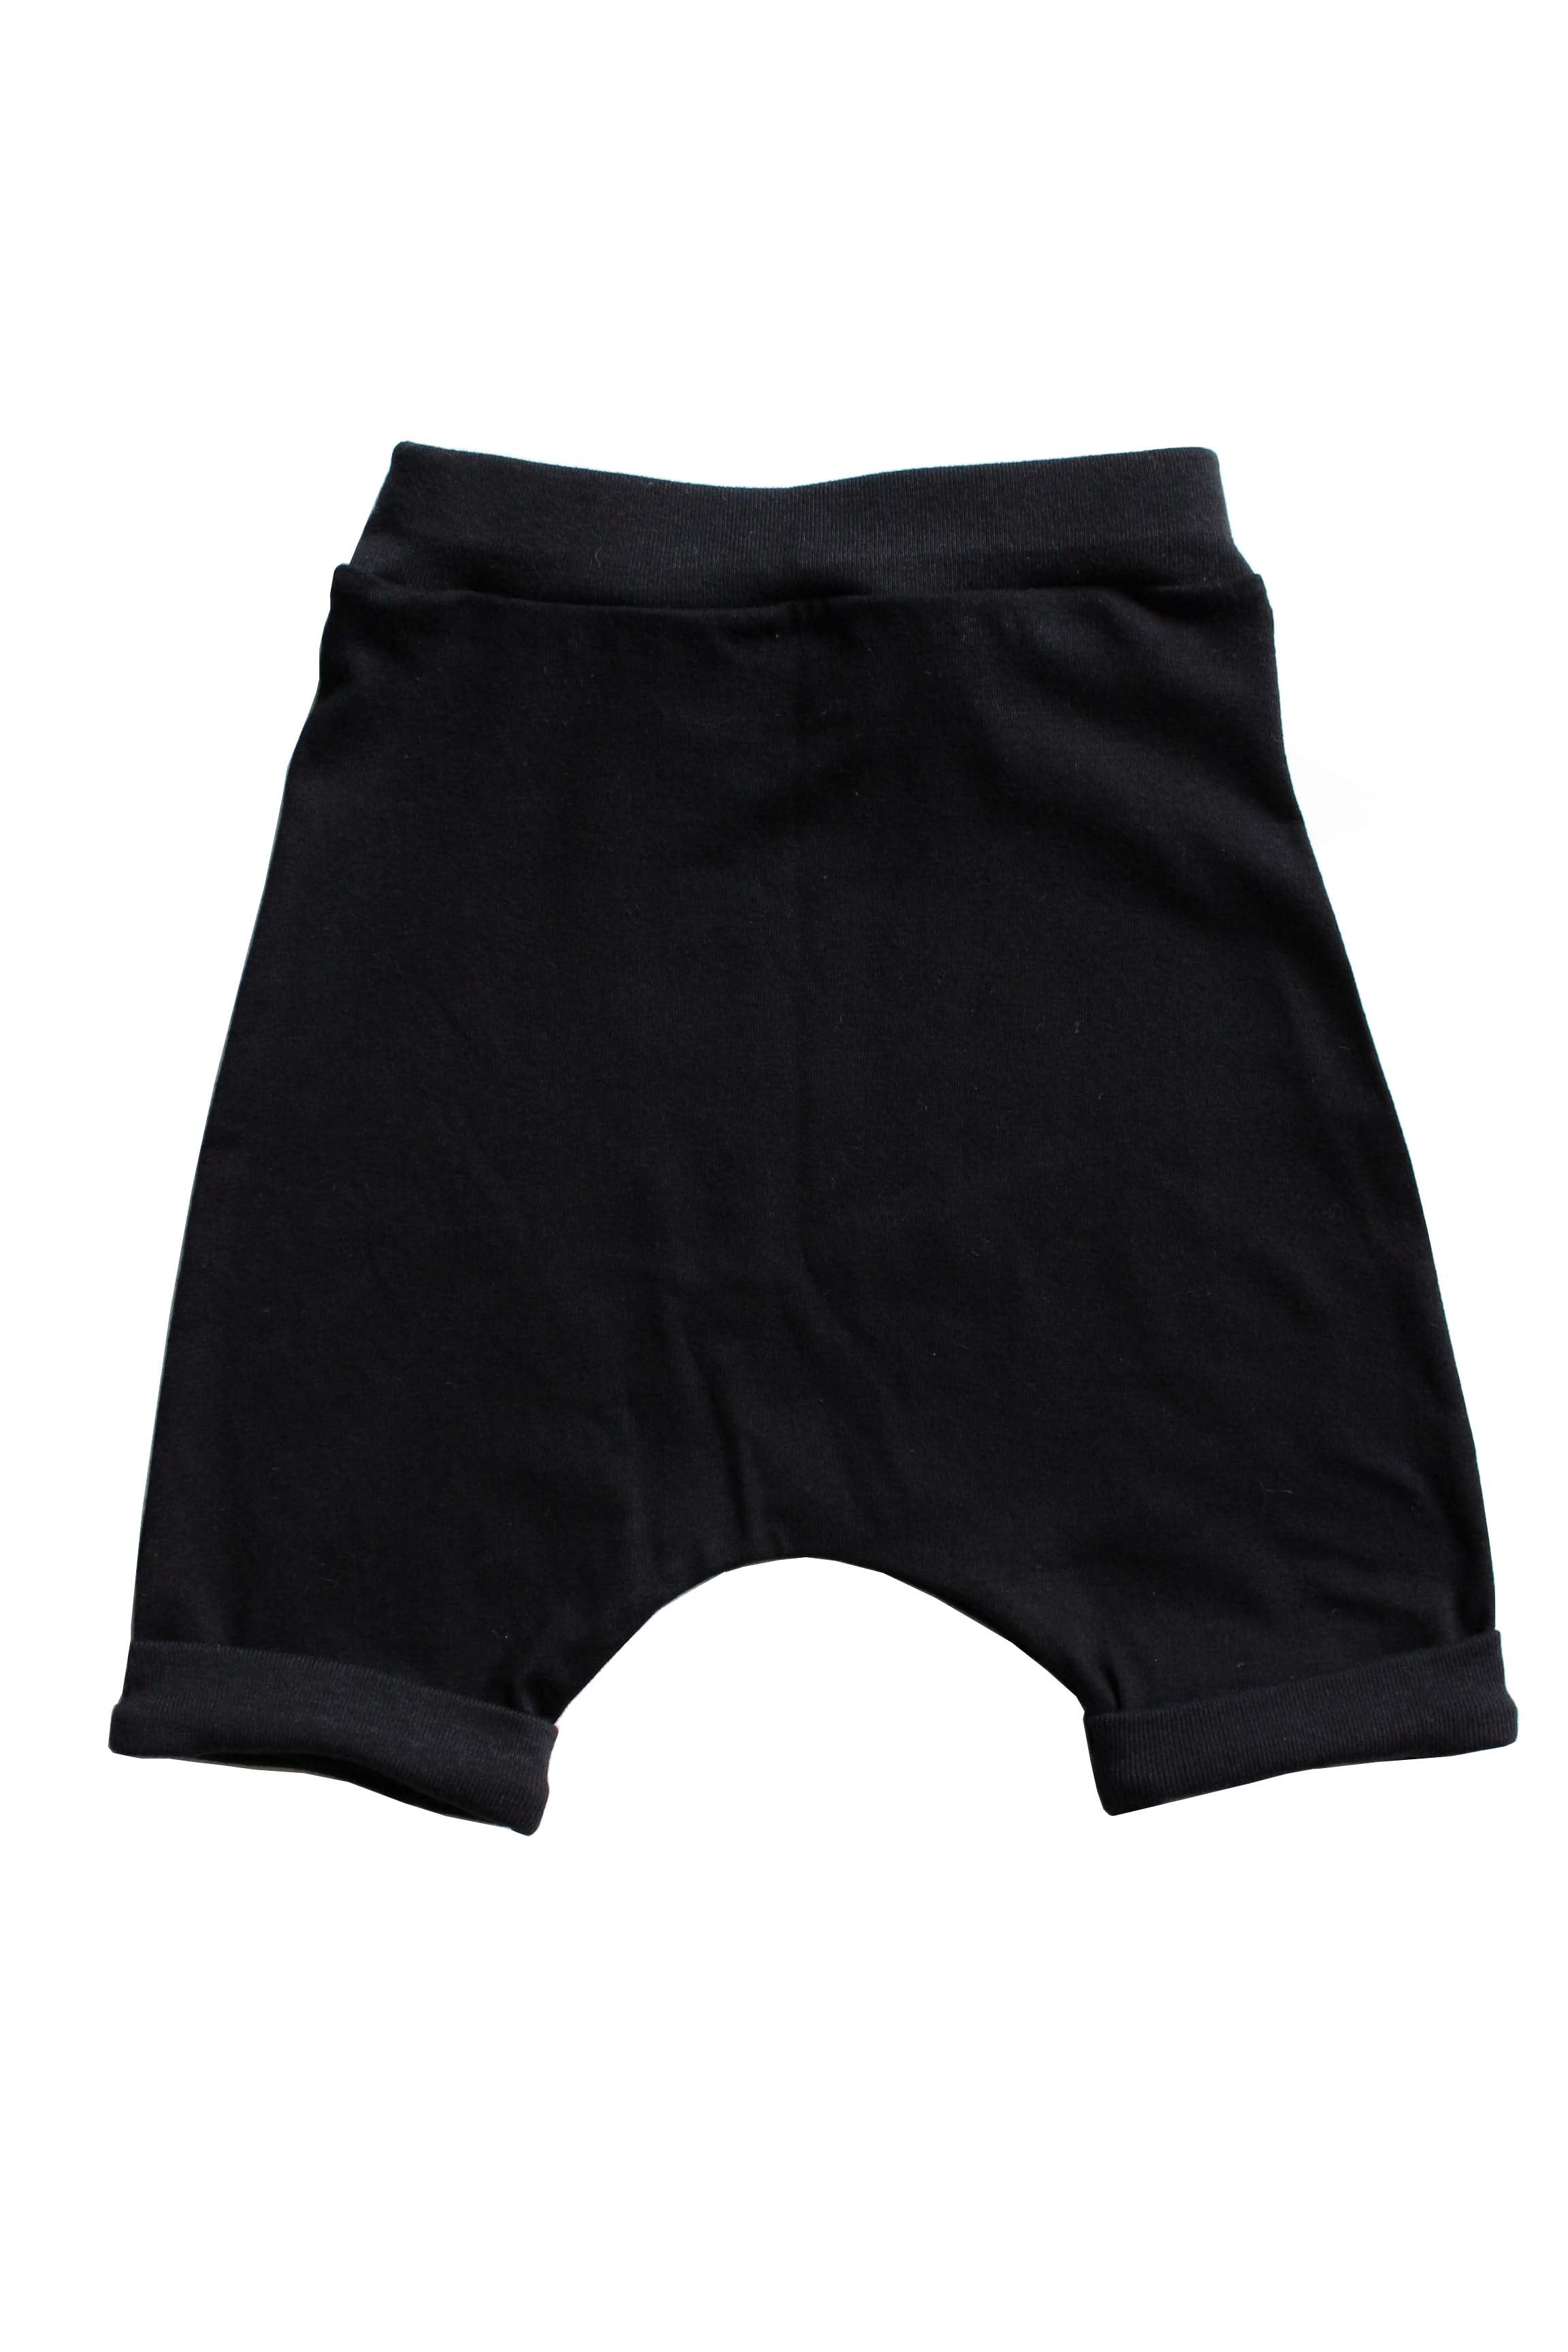 Solid Black Harems Shorts